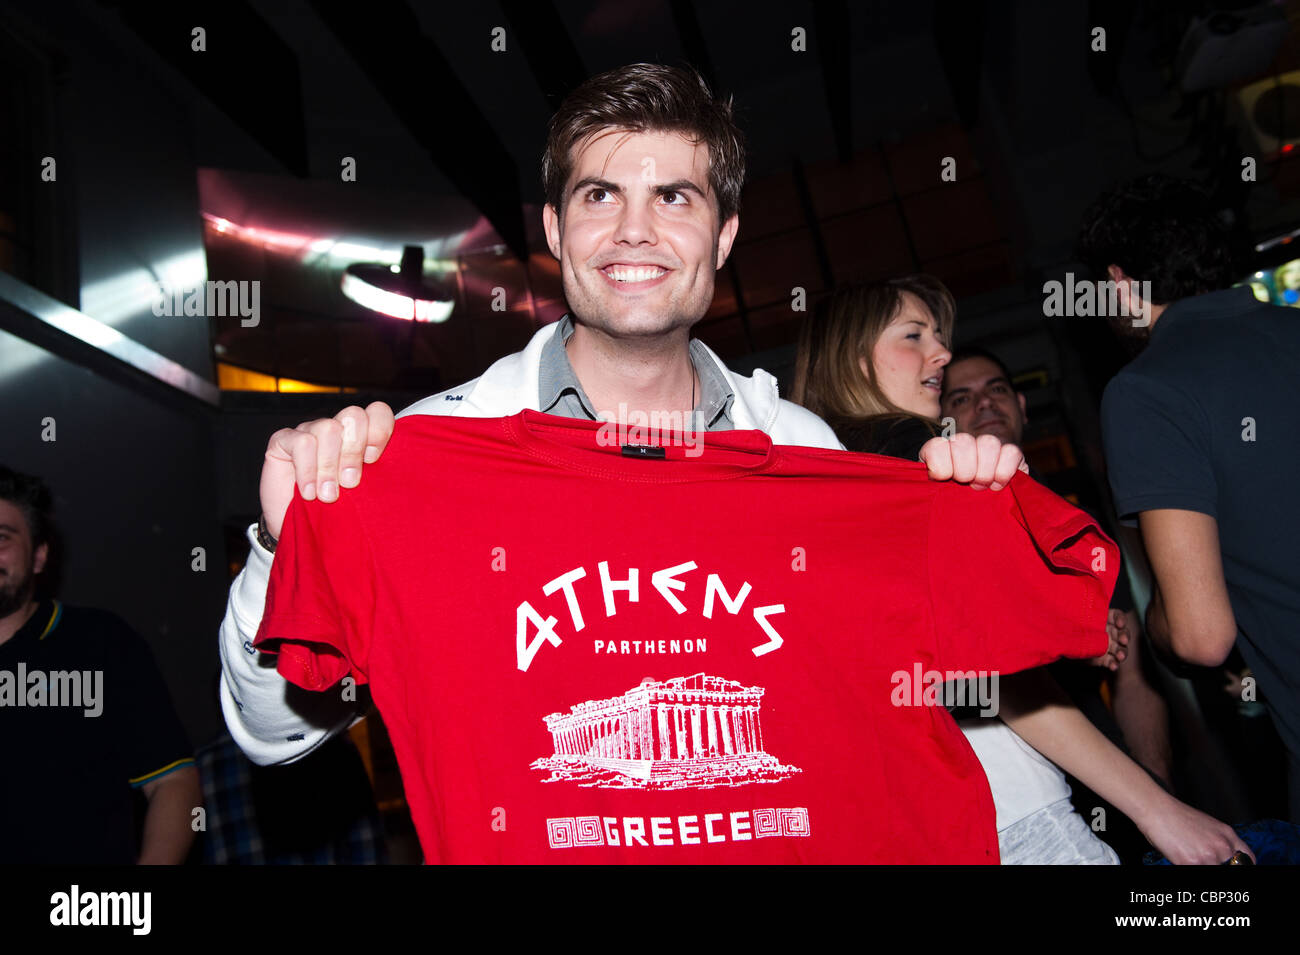 Athenian holding a kitsch t -shirt with the Parthenon on a night out in Bios bar in Gazi area of Athens. - Stock Image